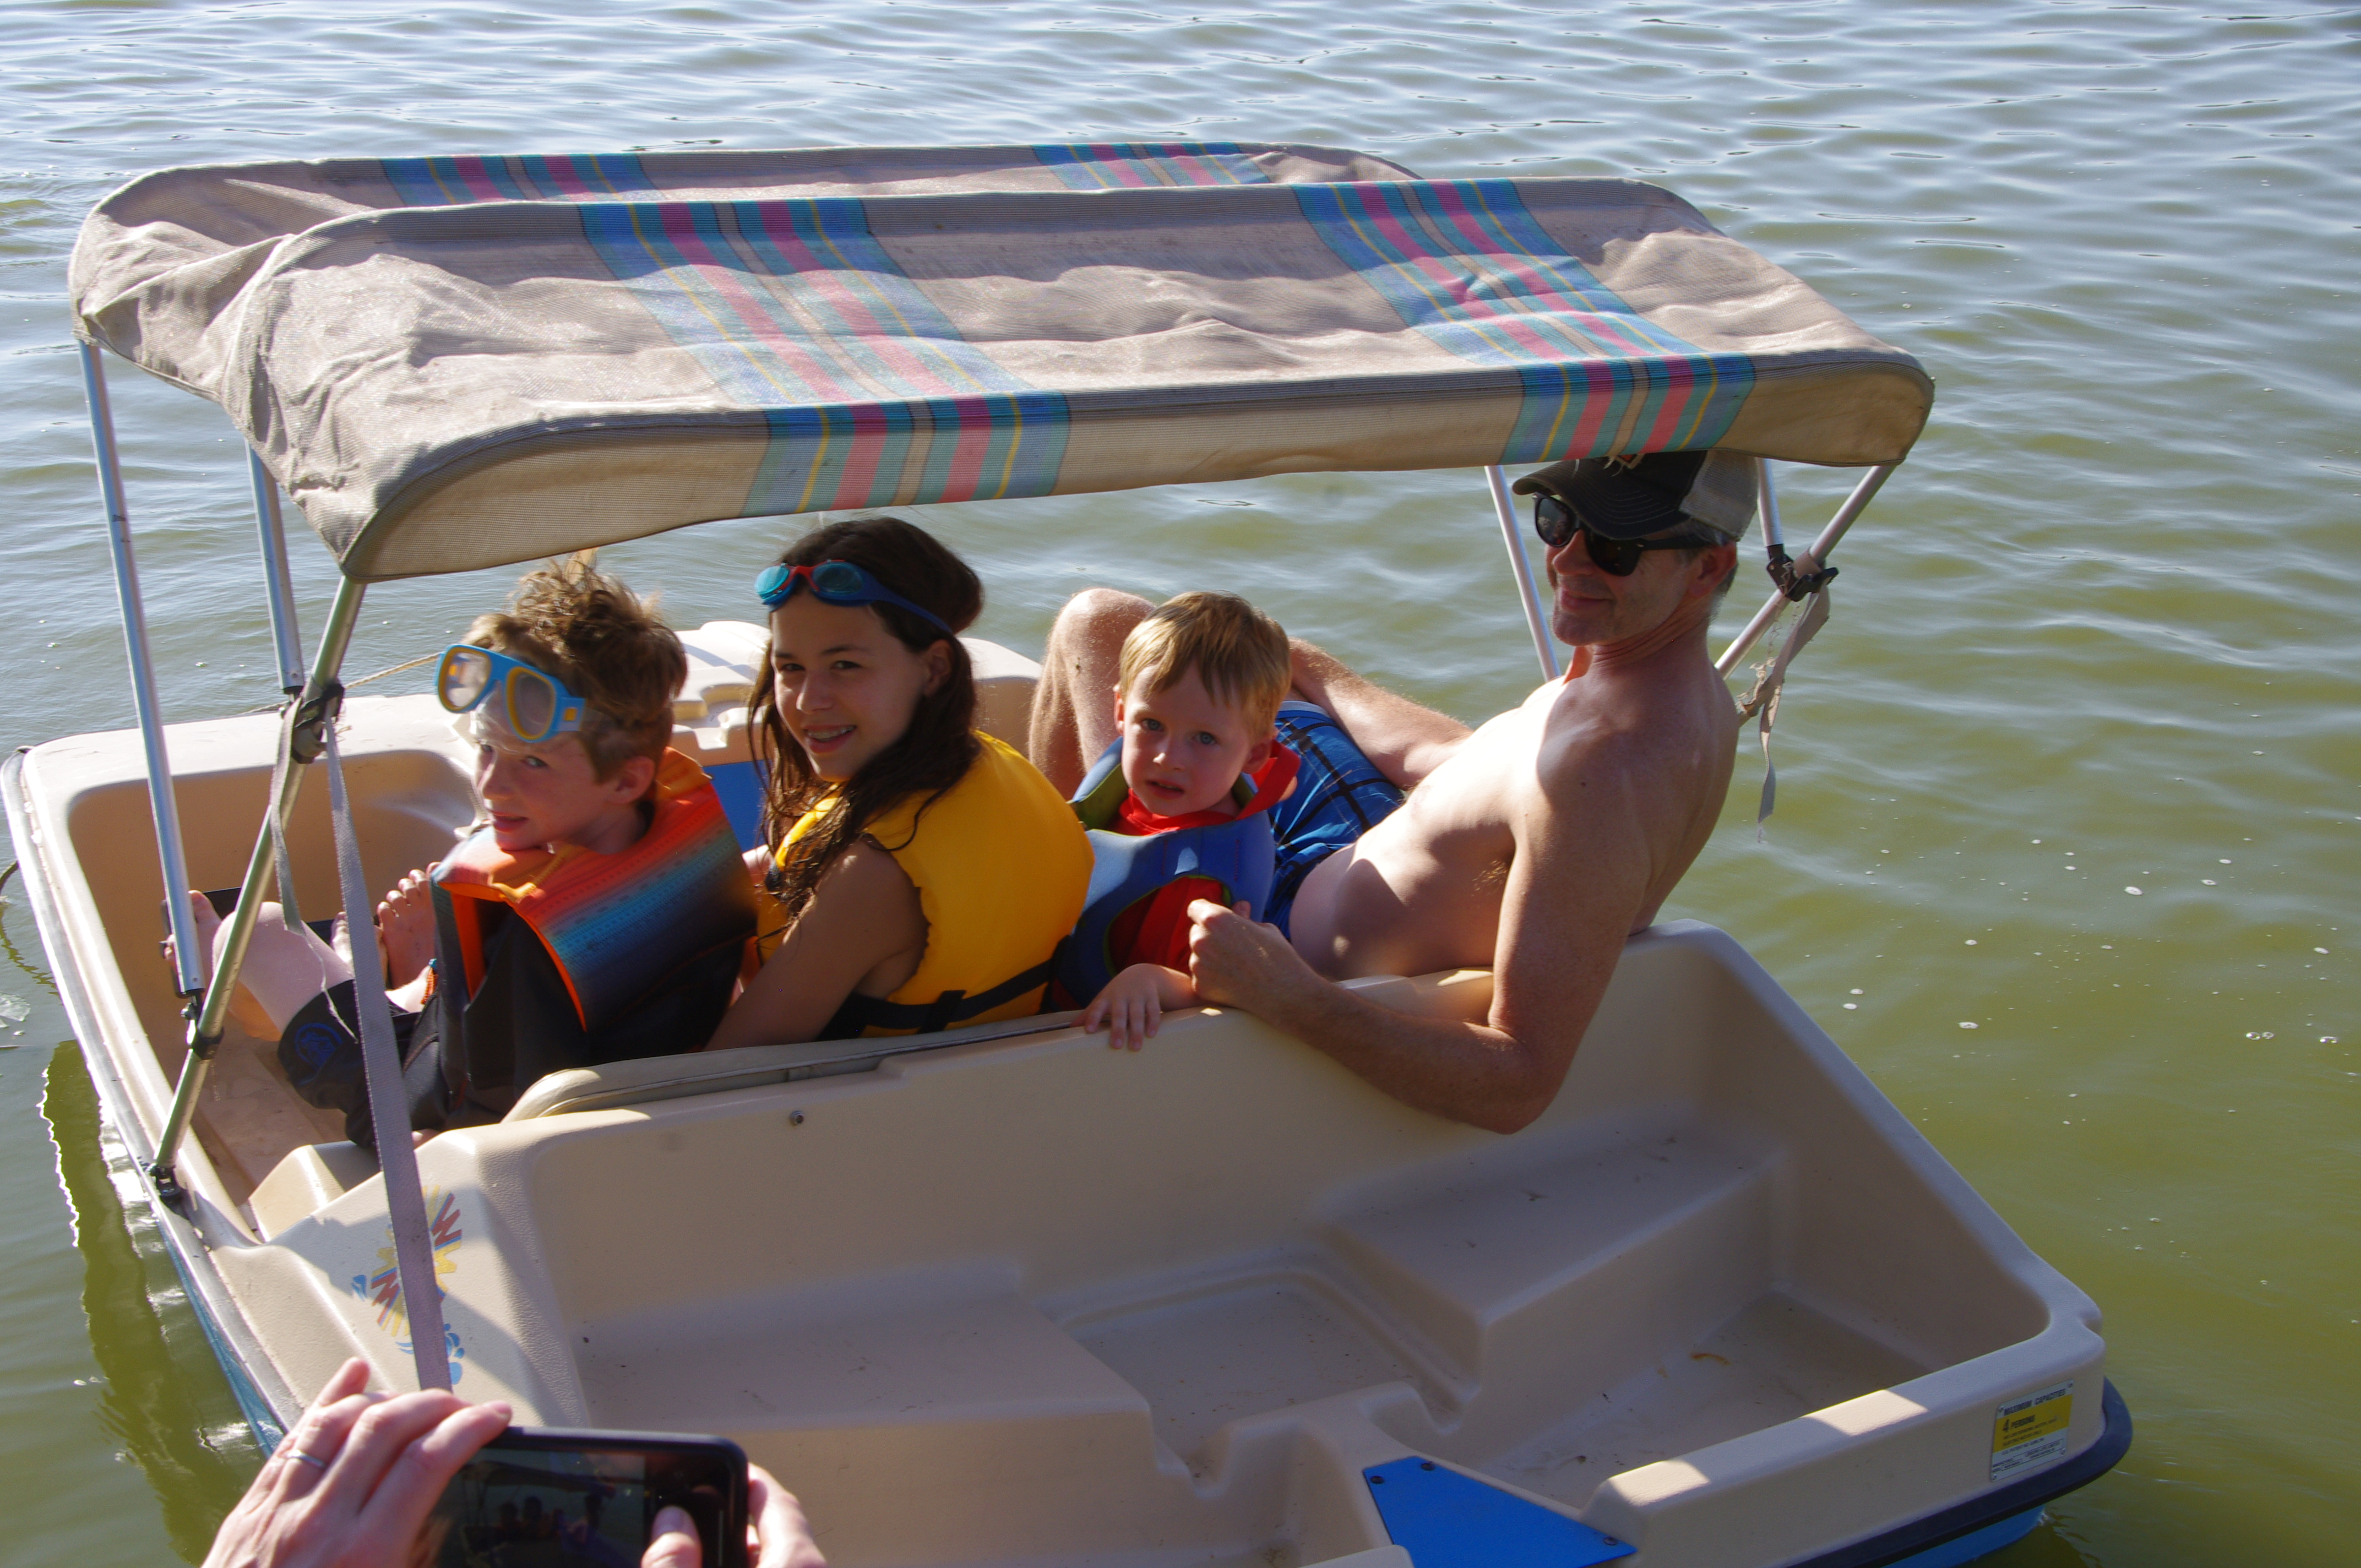 Three kids and an adult in a peddle boat.